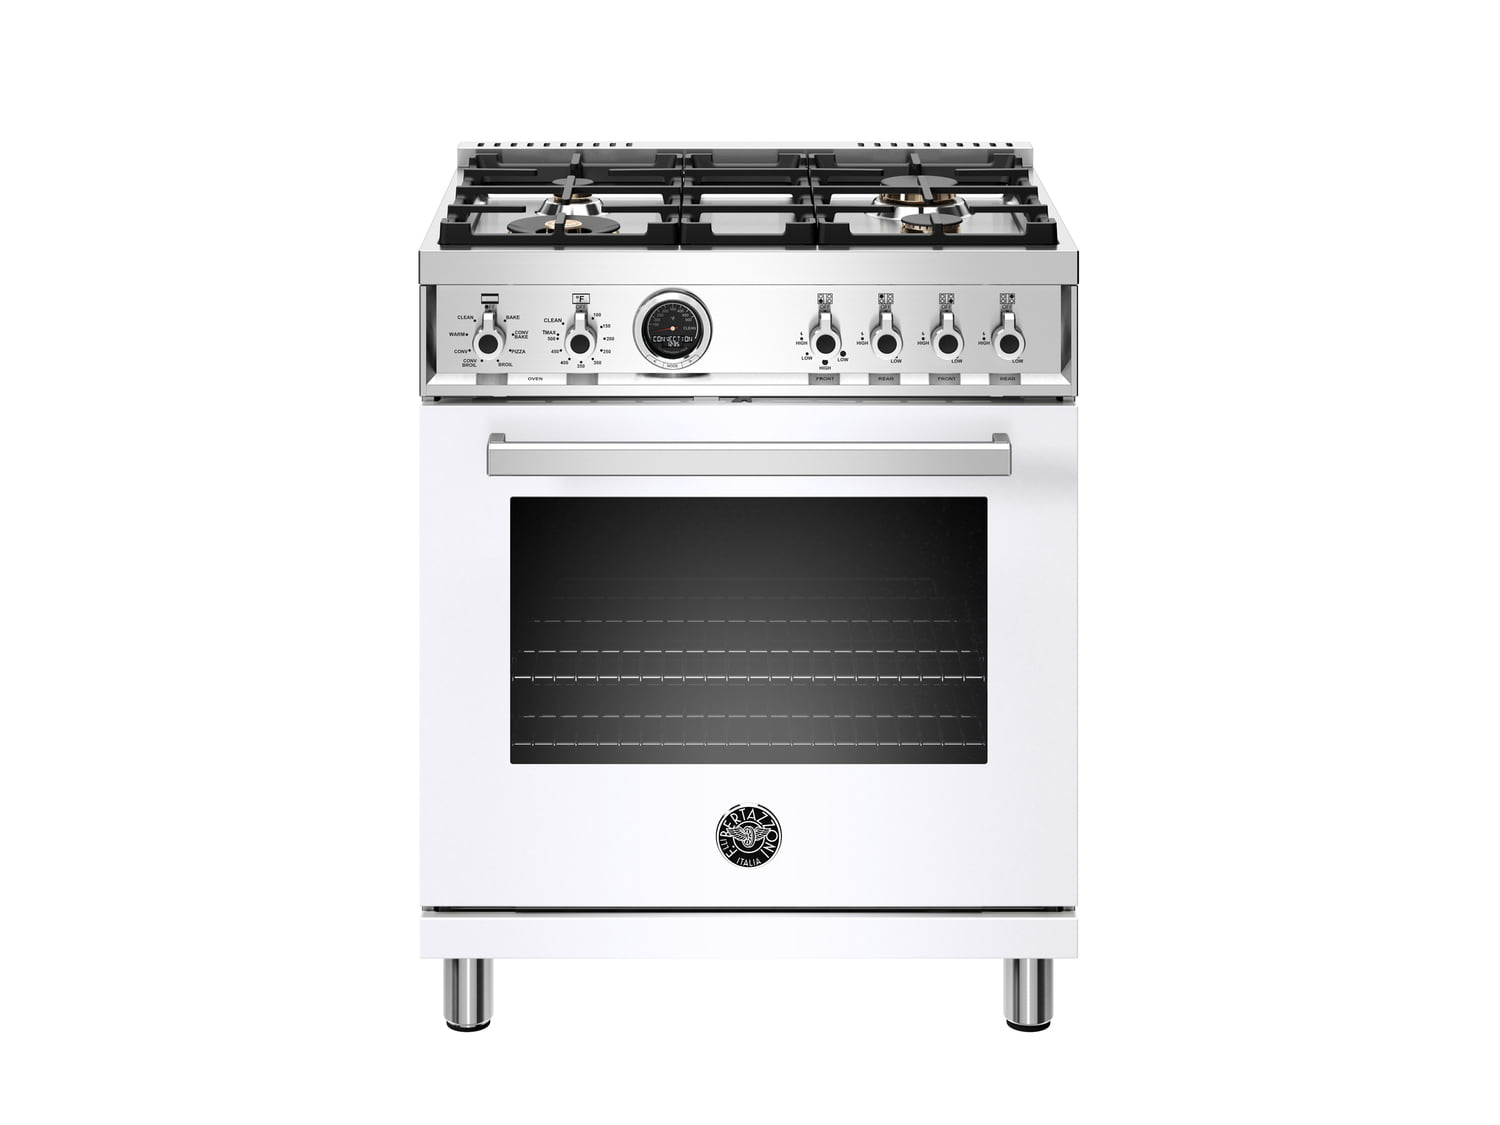 Load image into Gallery viewer, Bertazzoni PROF304DFSBIT 30 Inch Dual Fuel Range, 4 Brass Burner, Electric Self-Clean Oven Bianco